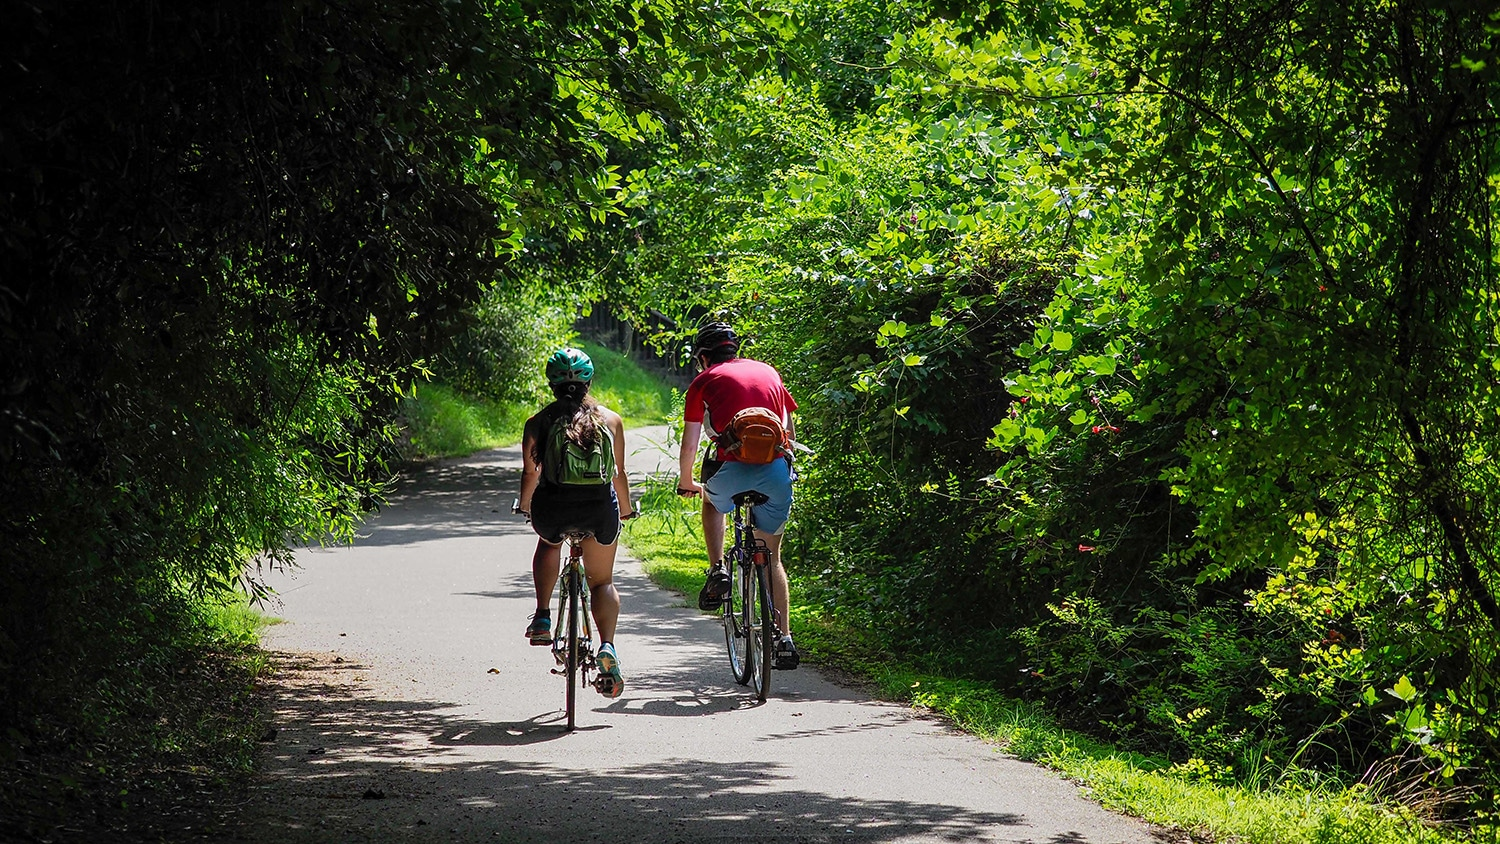 The trails around Lake Raleigh offer opportunities for running, biking, fishing and other recreational activities.